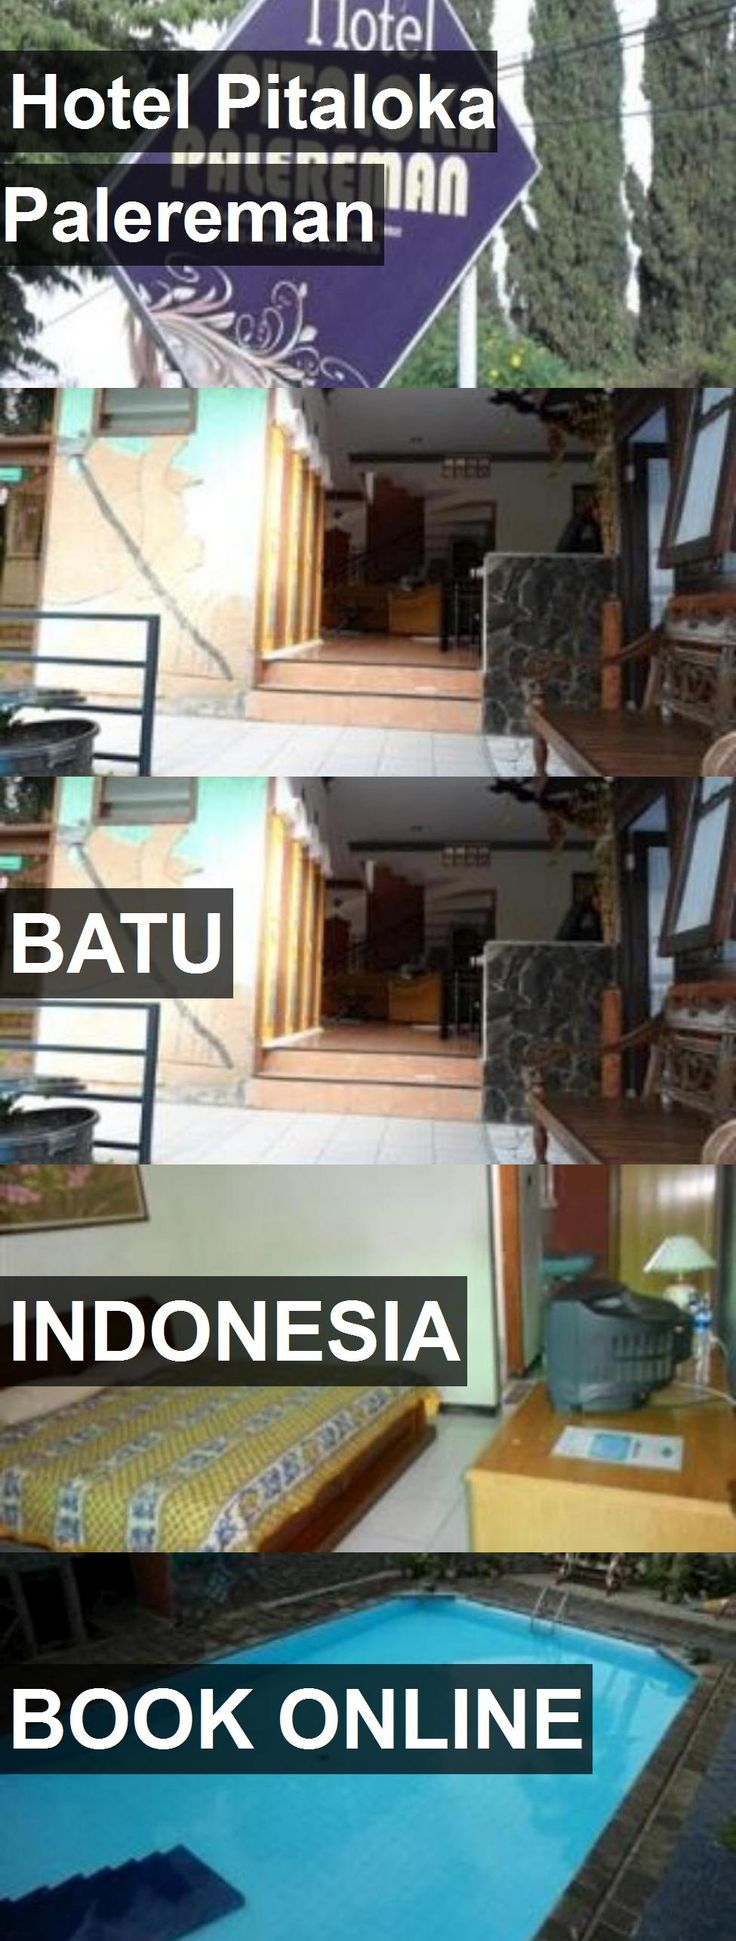 Hotel Pitaloka Palereman in Batu, Indonesia. For more information, photos, reviews and best prices please follow the link. #Indonesia #Batu #travel #vacation #hotel